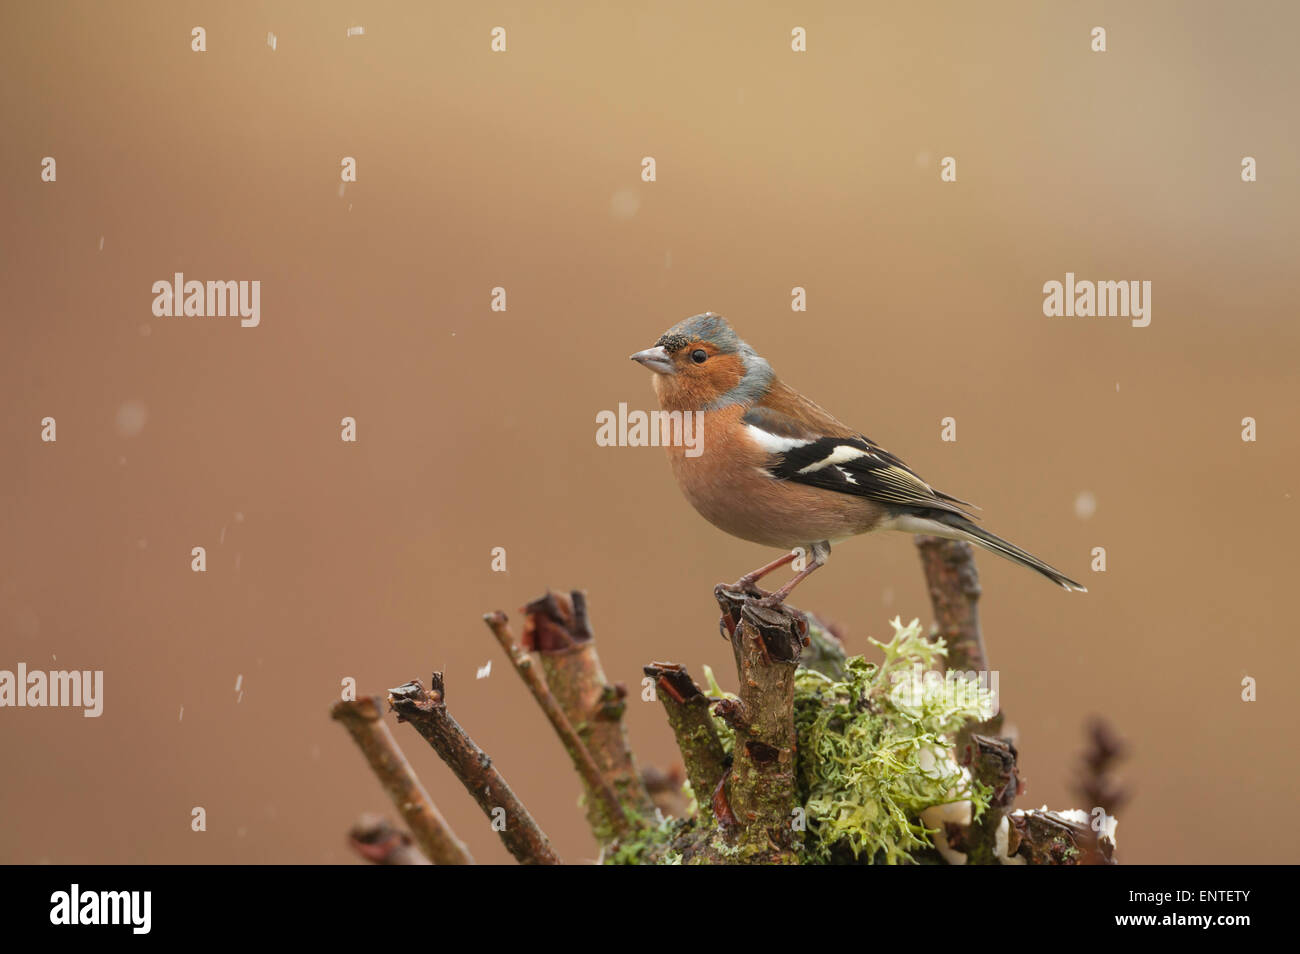 Chaffinch (Fringilla coelebs) in the snow, UK - Stock Image